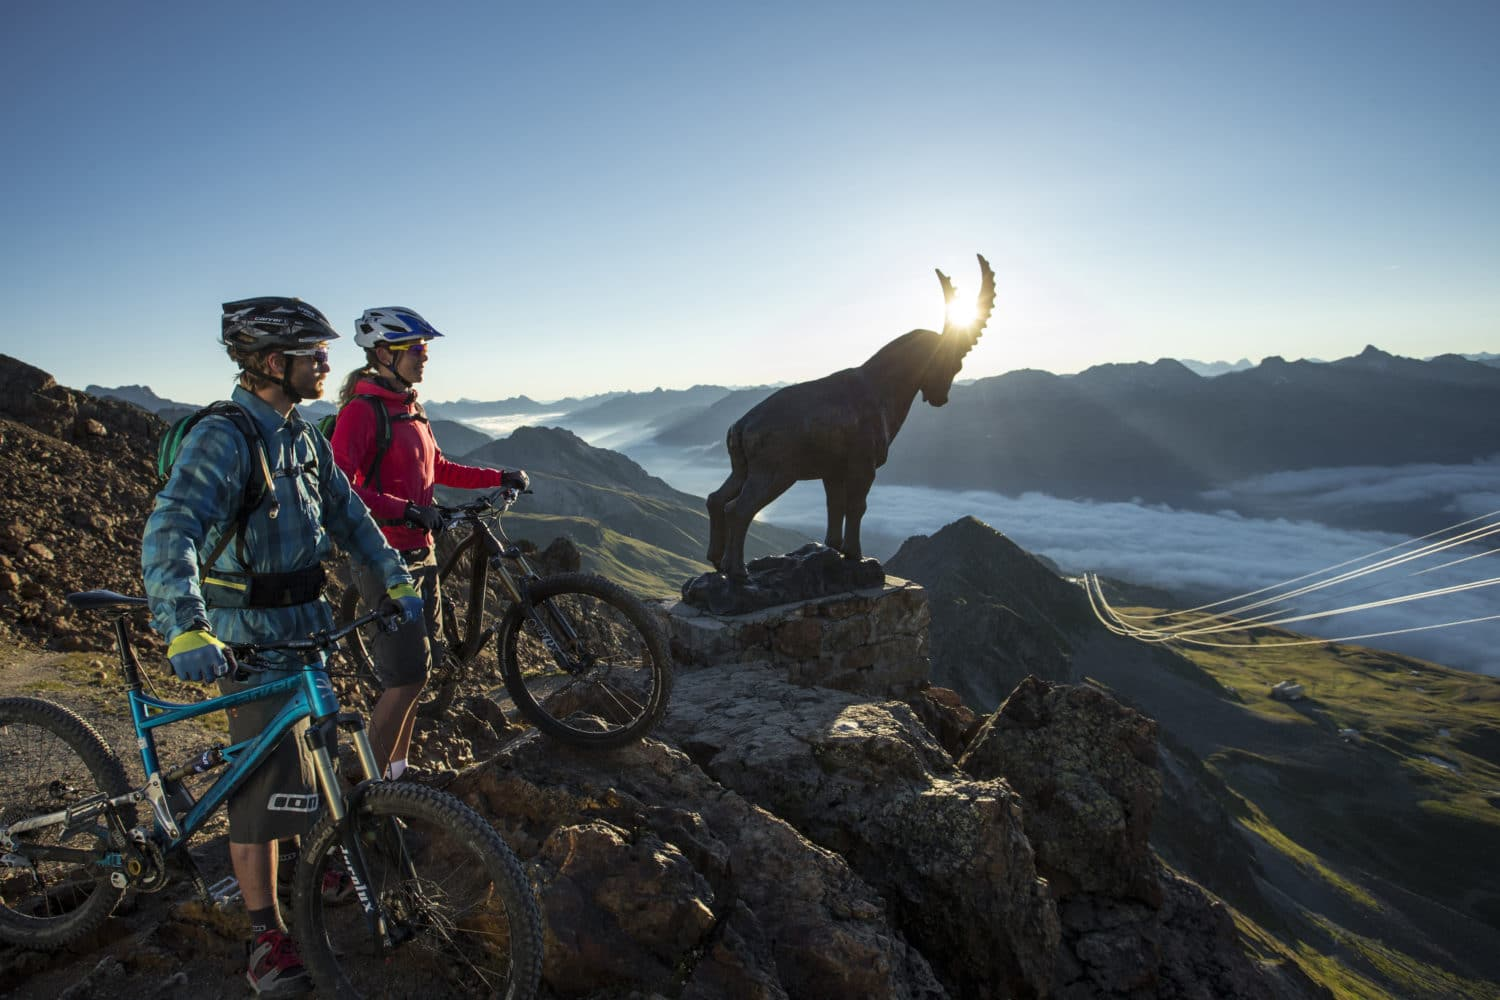 ENGADIN ST. MORITZ - Mountainbiker kurz nach Sonnenaufgang auf dem Piz Nair (3056m ue.M.) mit Steinbock. Mountain bikers shortly before sunrise on Piz Nair (3056 m), with ibex. Mountainbiker poco dopo il tramonto sul Piz Nair (3056m m s.l.m.) con stambecco. Copyright by: ENGADIN St. Moritz By-line: swiss-image.ch/Markus Greber